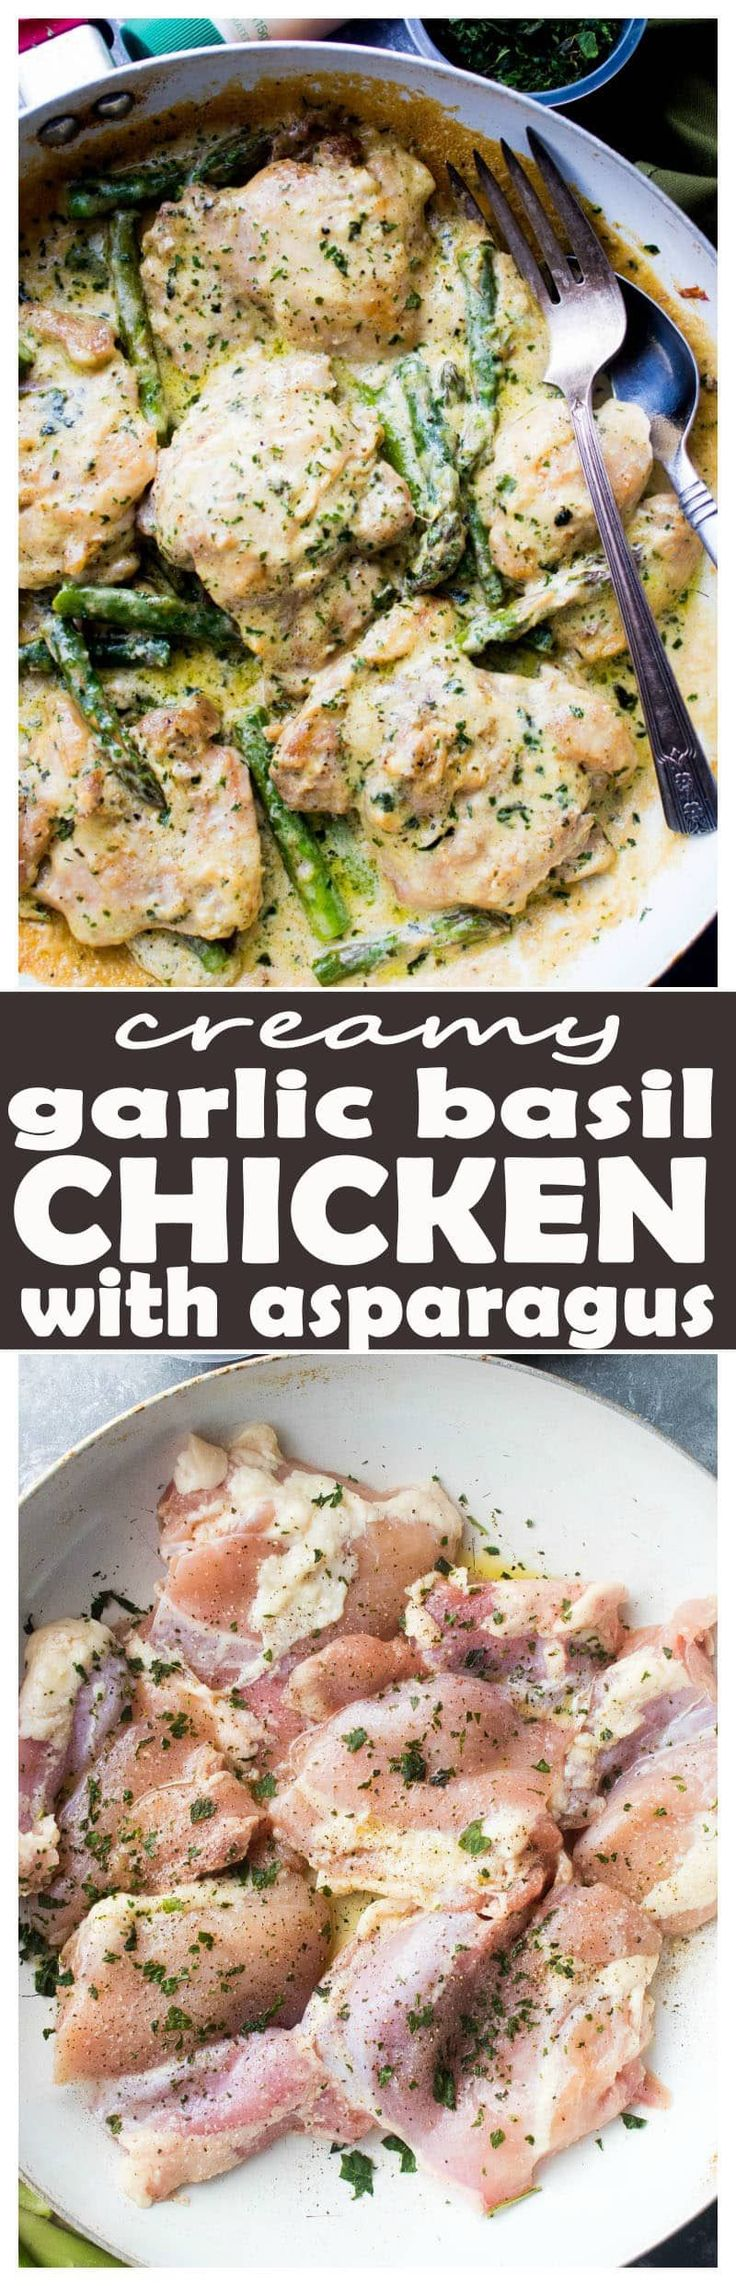 Thank you Gourmet Garden and Kroger for sponsoring this post! All opinions are 100% my own.Creamy Garlic Basil Chicken with Asparagus -This delicious andcreamless Creamy Garlic Basil Chickenis prepared in a skillet witha flavorful garlicky basil sauce and asparagus spears.Creamy Garlic Basil Chicken, wehave been waiting for you!Hey ya, friends! How's this for creamless creamy chicken? RIGHT? It's creamy, but without thecream! I mean, genius or what? Evaporated milk is myforever...